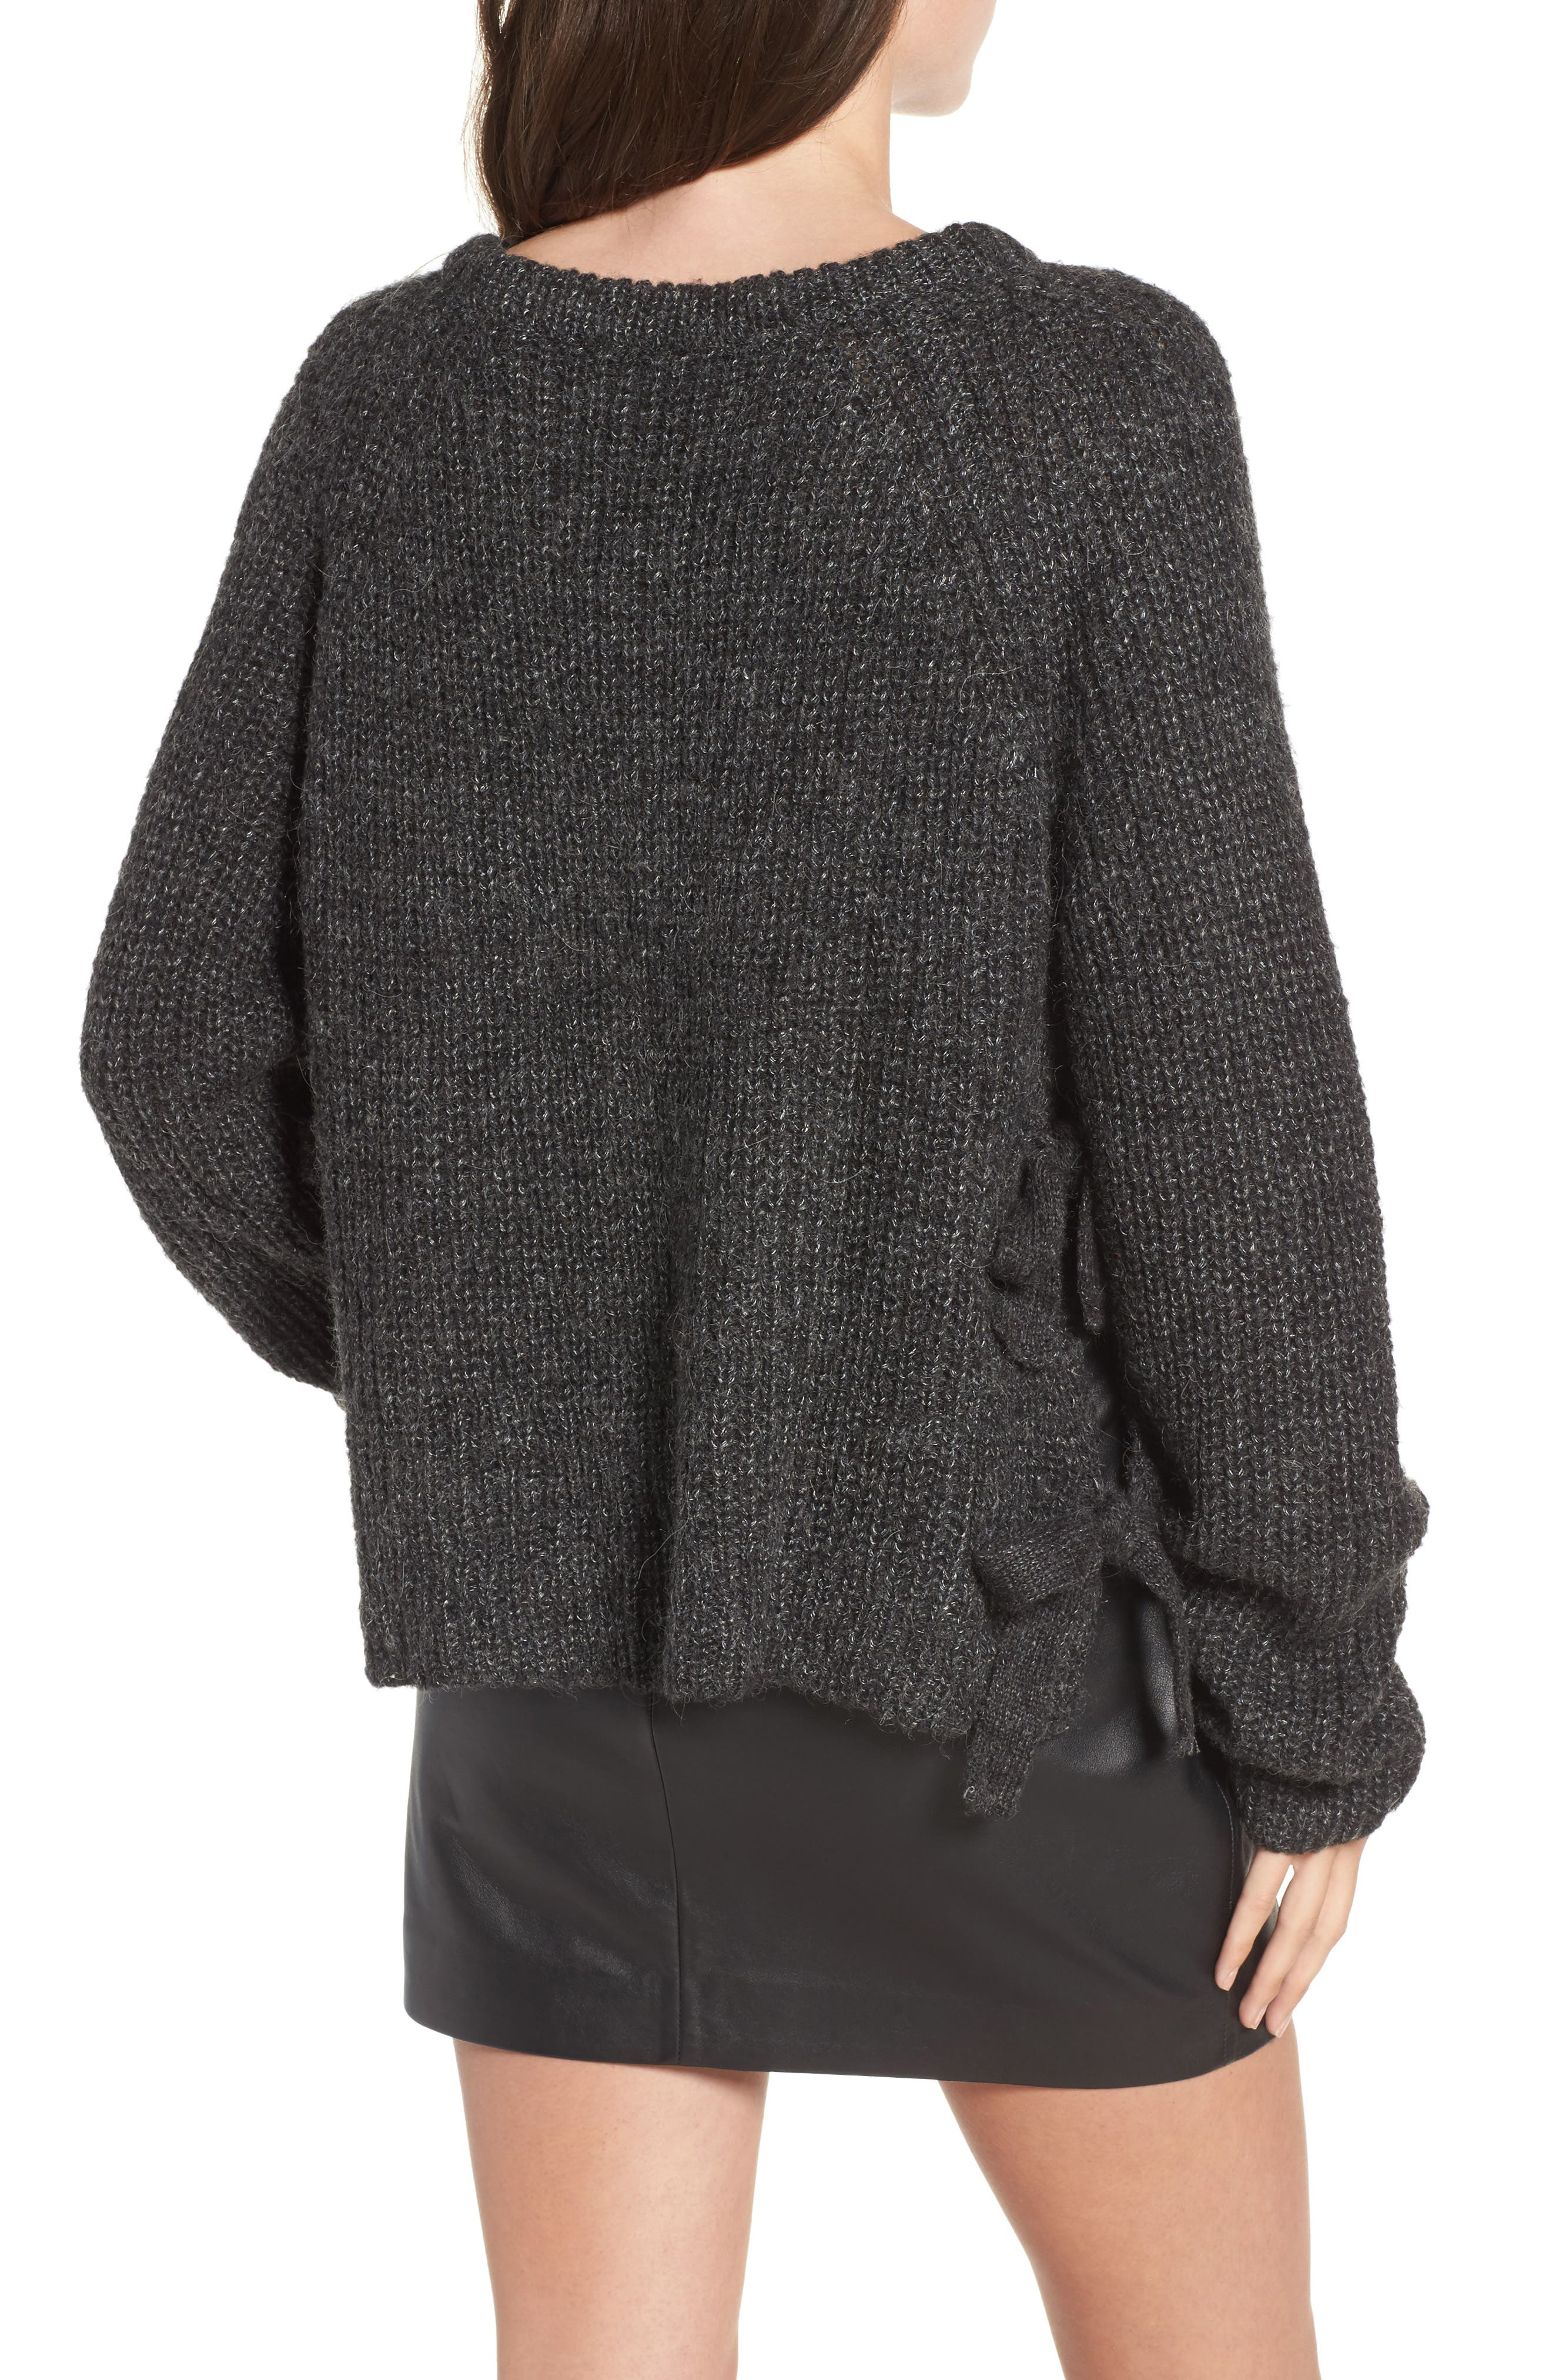 Alternate Image 2  - ASTR the Label Lexie Side Tie Sweater